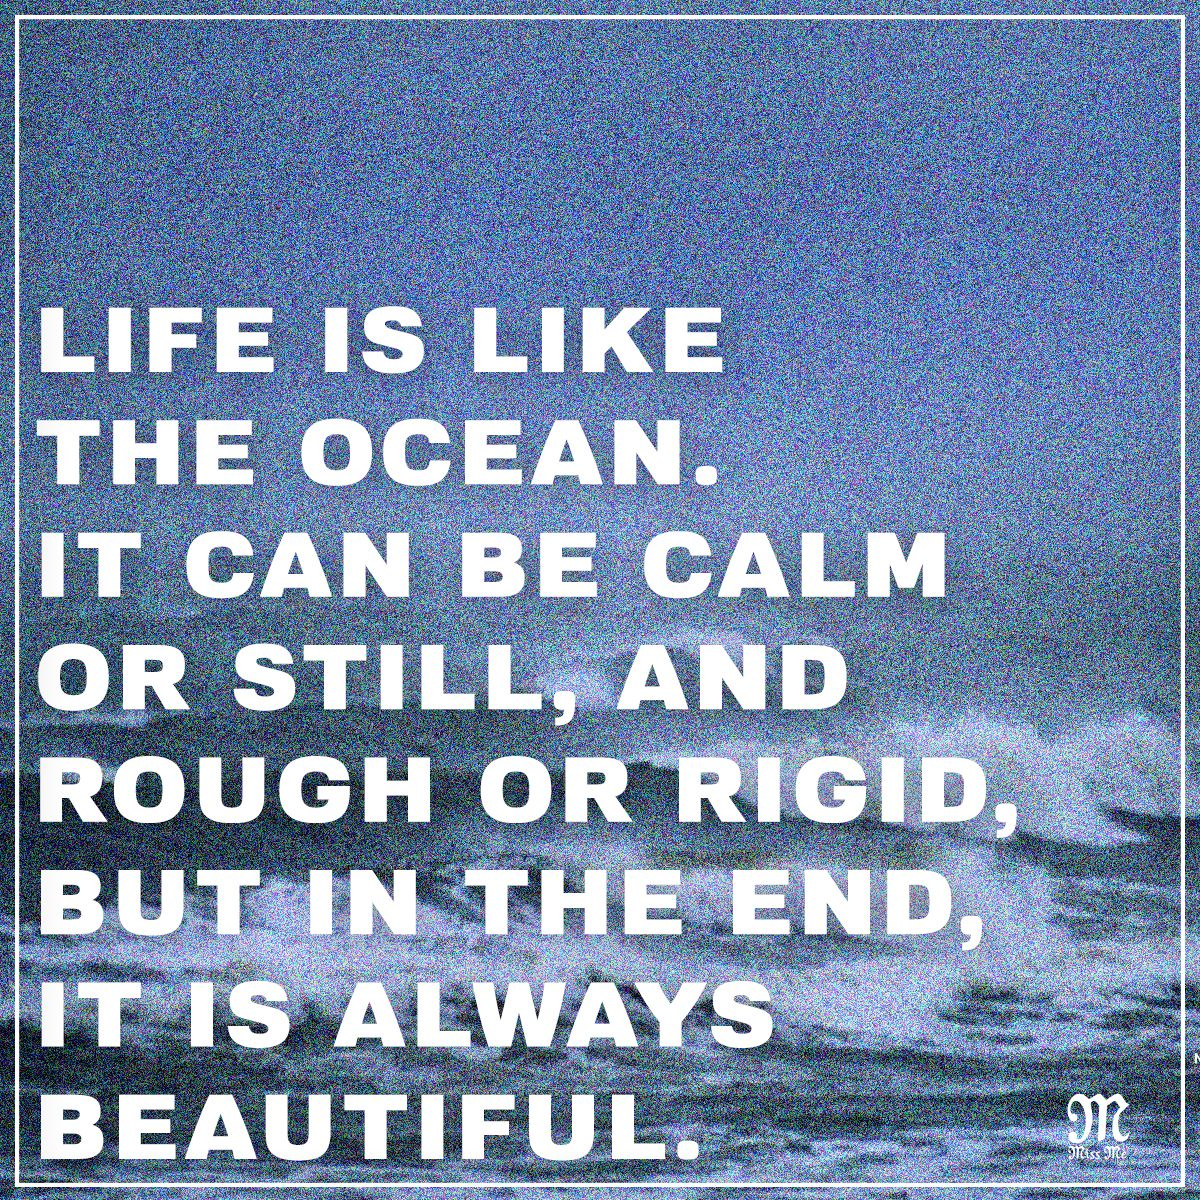 Life Is Like The Ocean Quotes: Life Is Like The Ocean. It Can Be Calm Or Still, And Rough